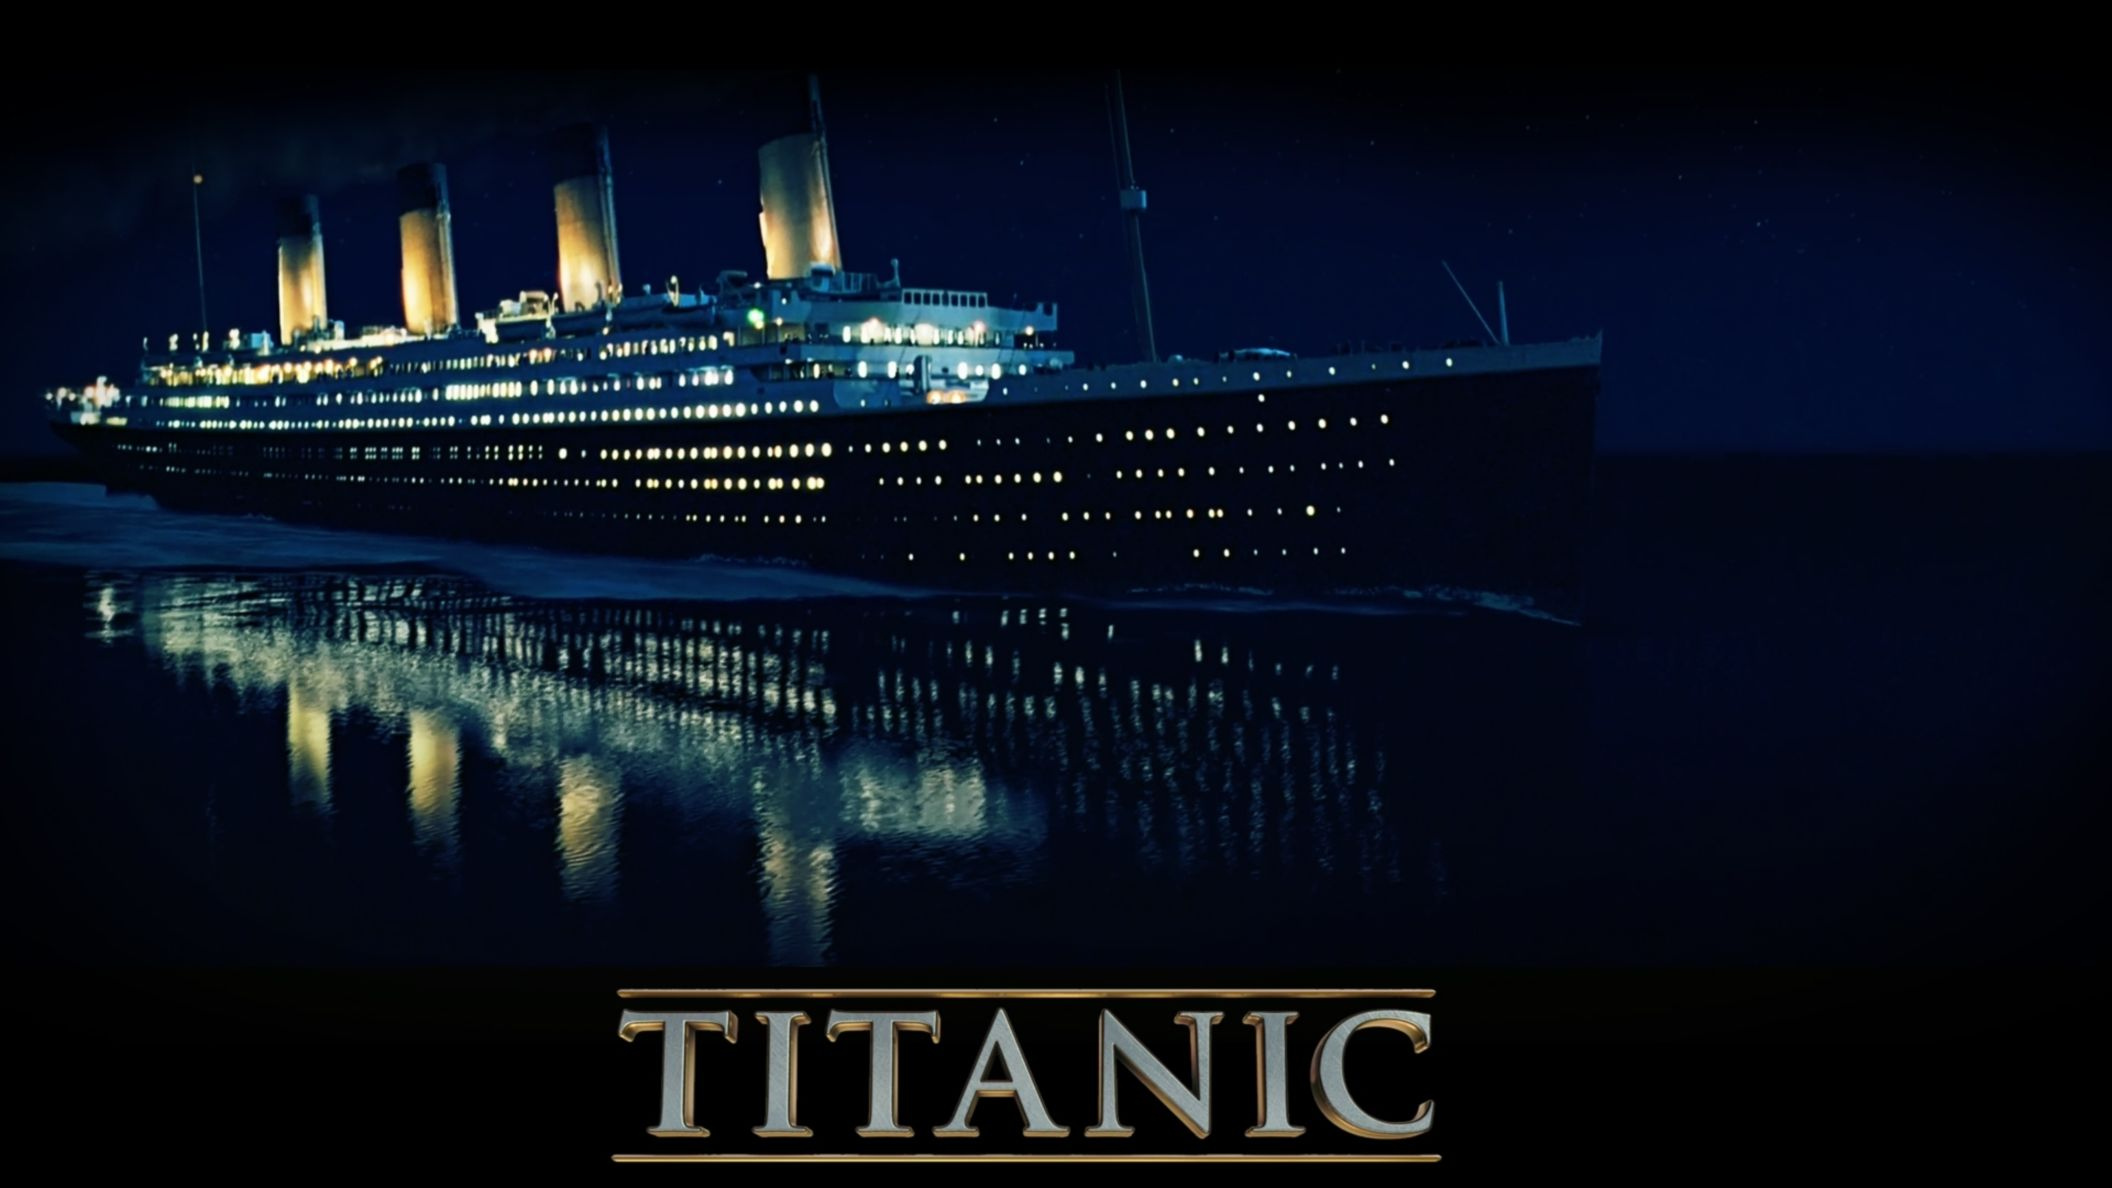 Download free HD Titanic Ship HD Wallpaper, image